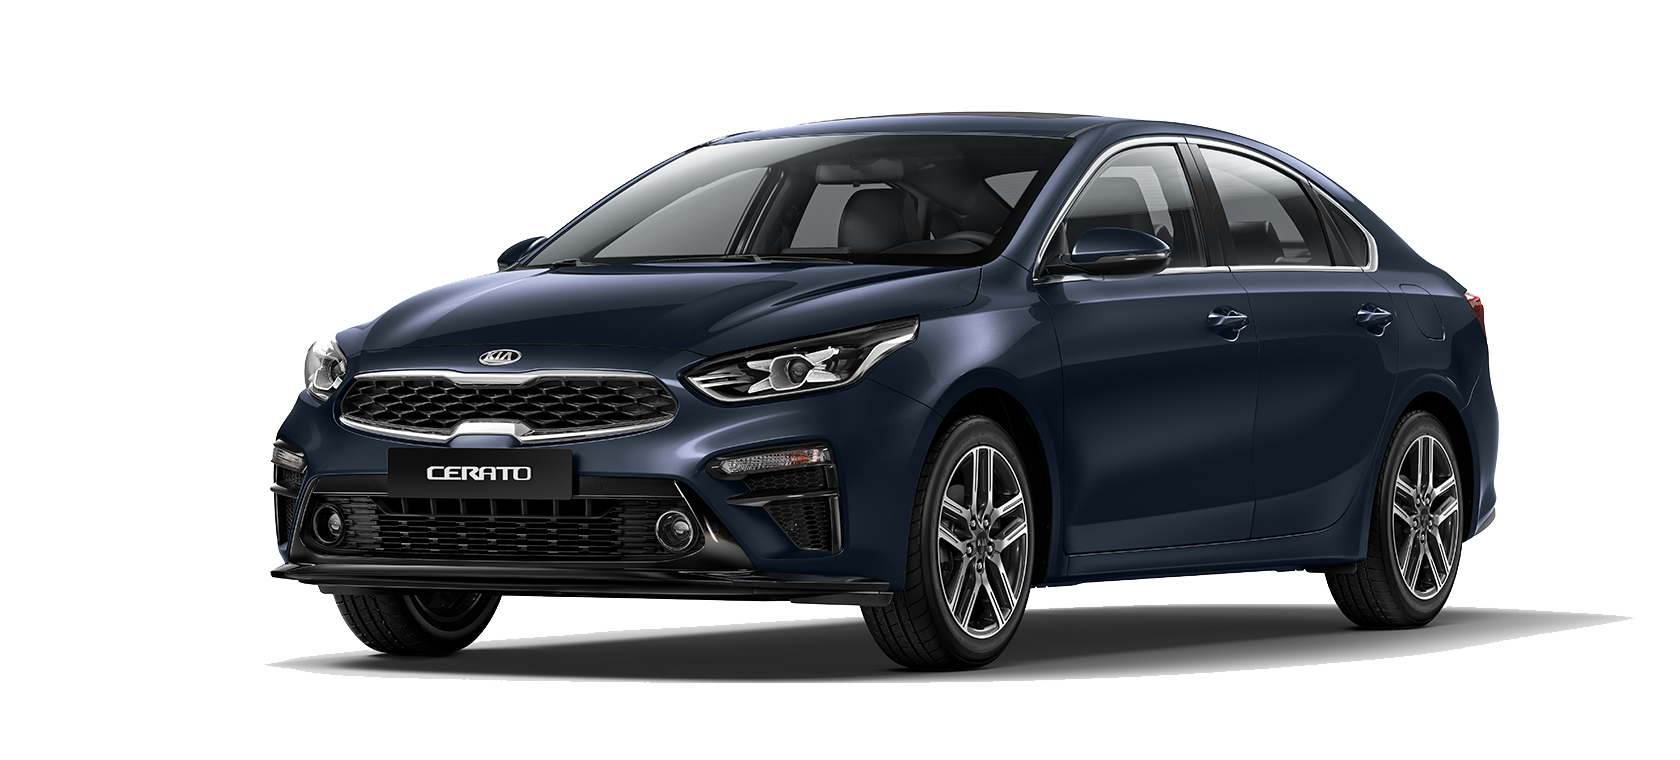 26 The Best Kia K3 2019 Picture